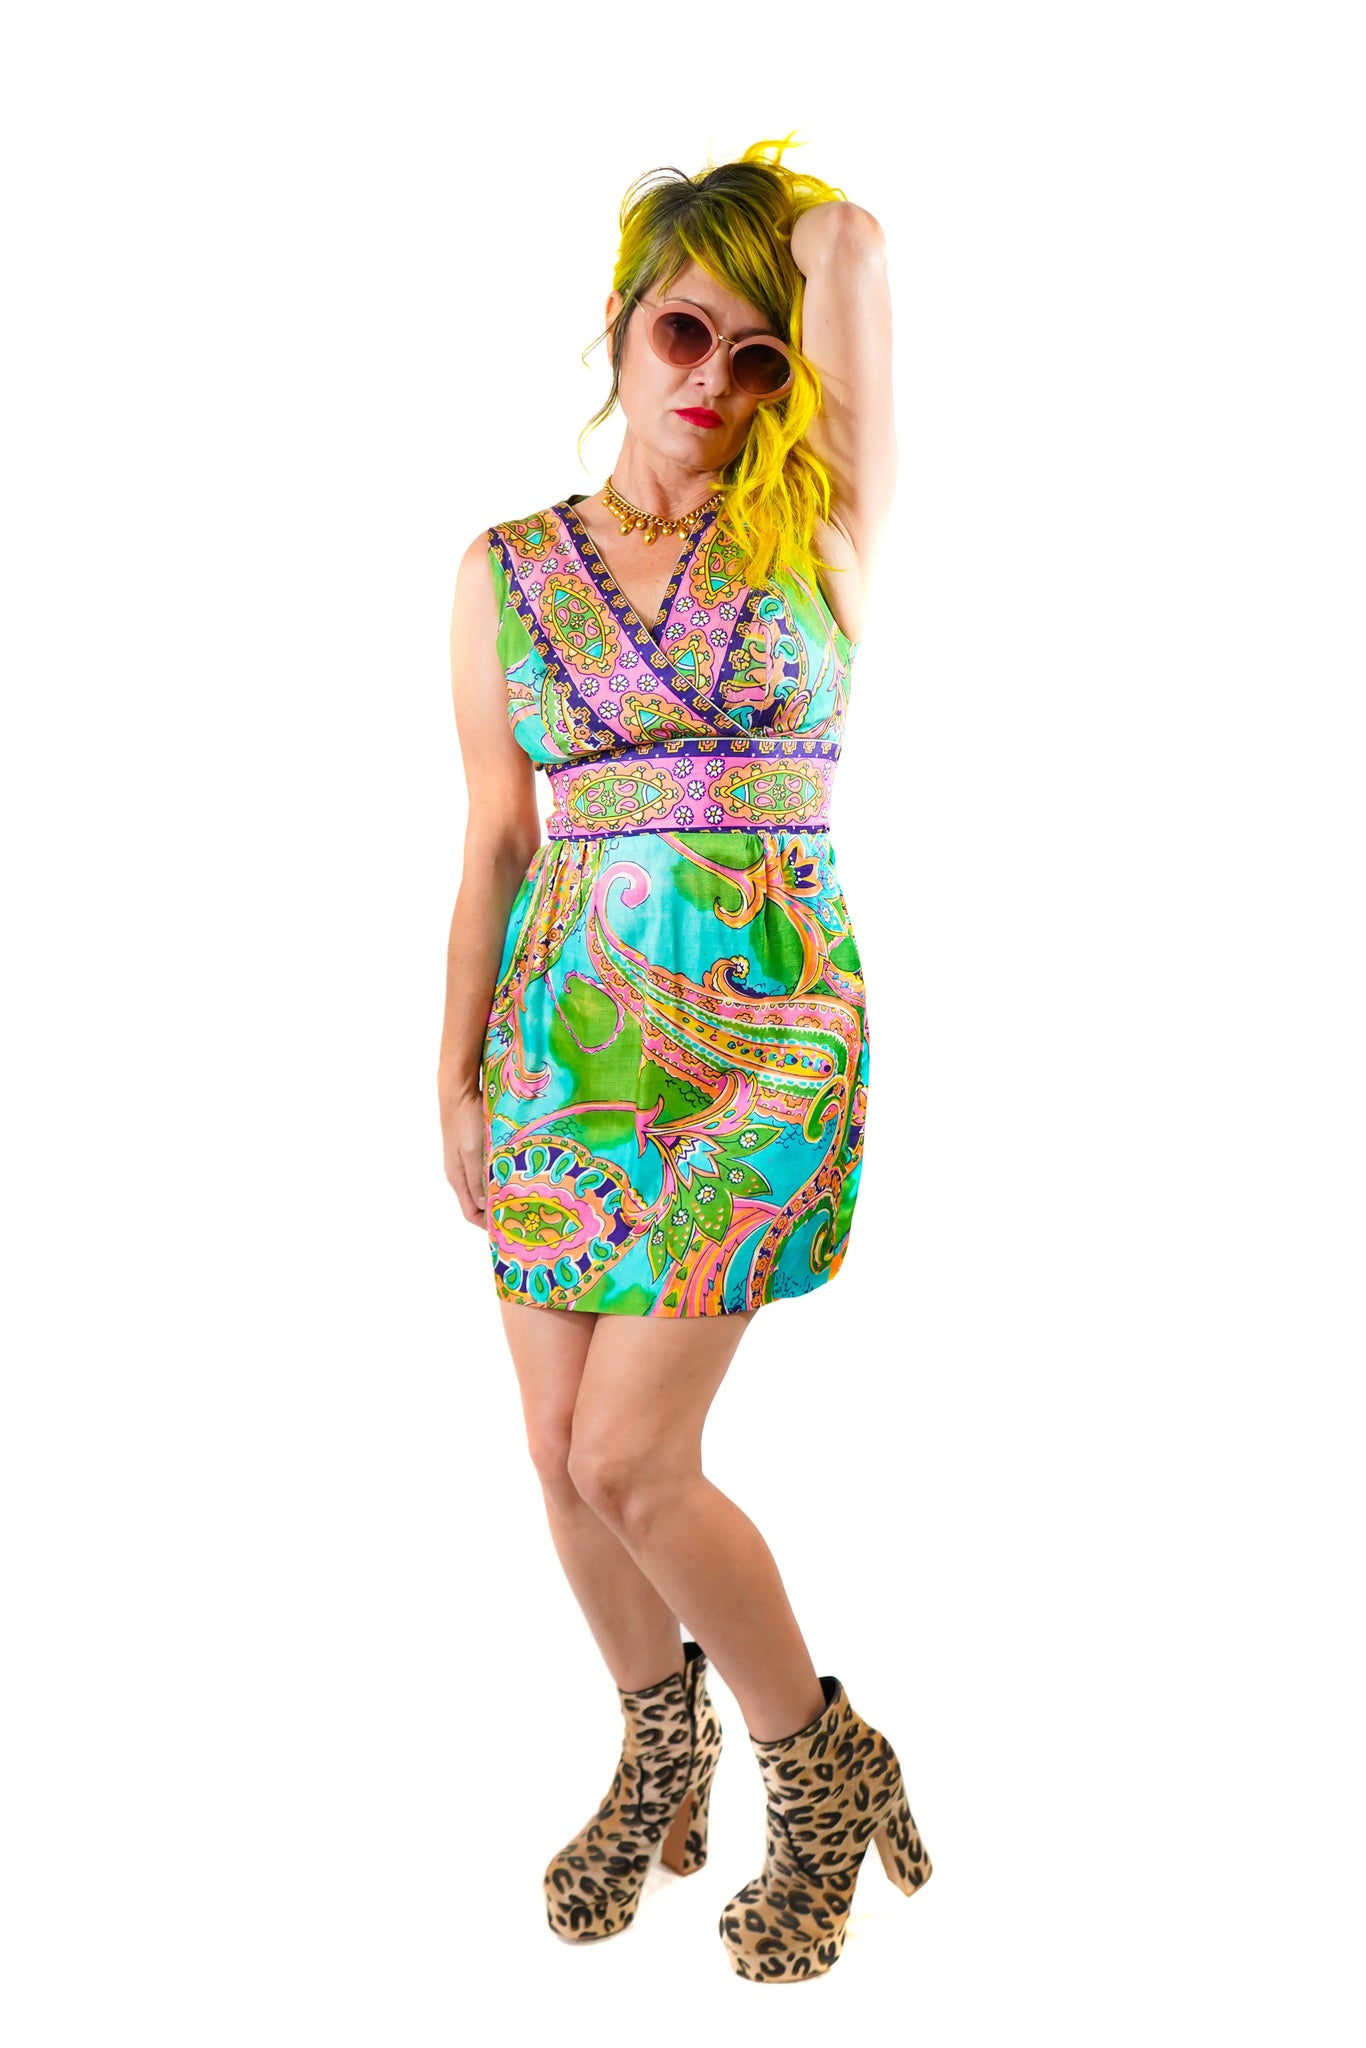 Lucy's Sunshine Dress - Vintage Shop - Hunt and Gather San Diego - Festival Fashion